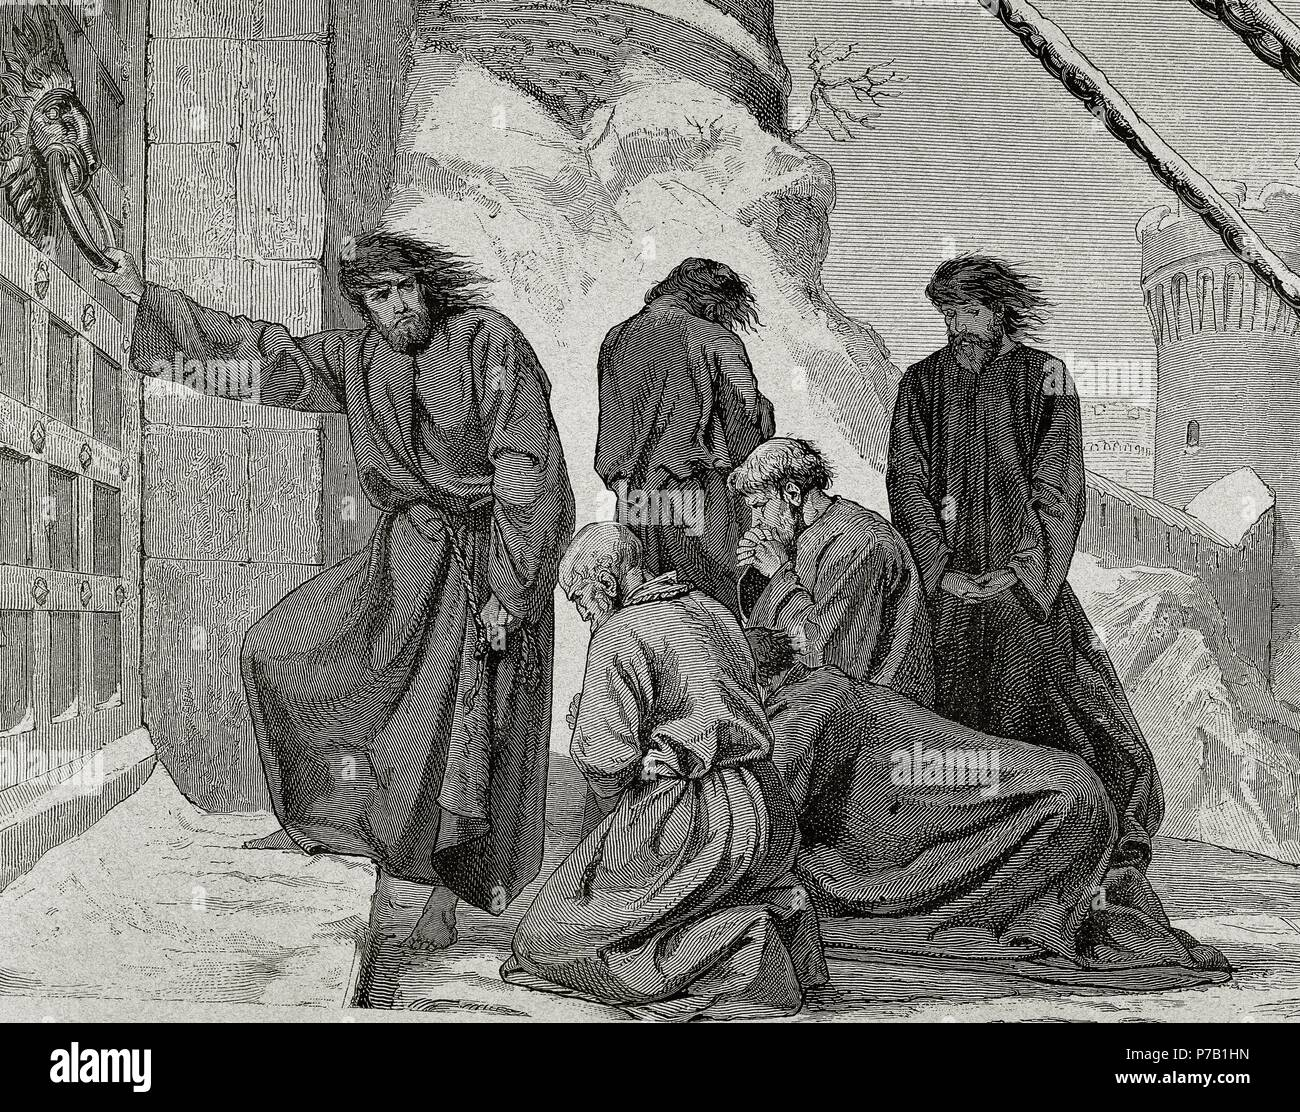 Henry IV (1050-1106). Holy Roman emperor. Henry IV at the entrance of the castle of Canossa (1077) to obtain the revocation of his excommunication of the Pope Gregory VII. Engraving. - Stock Image